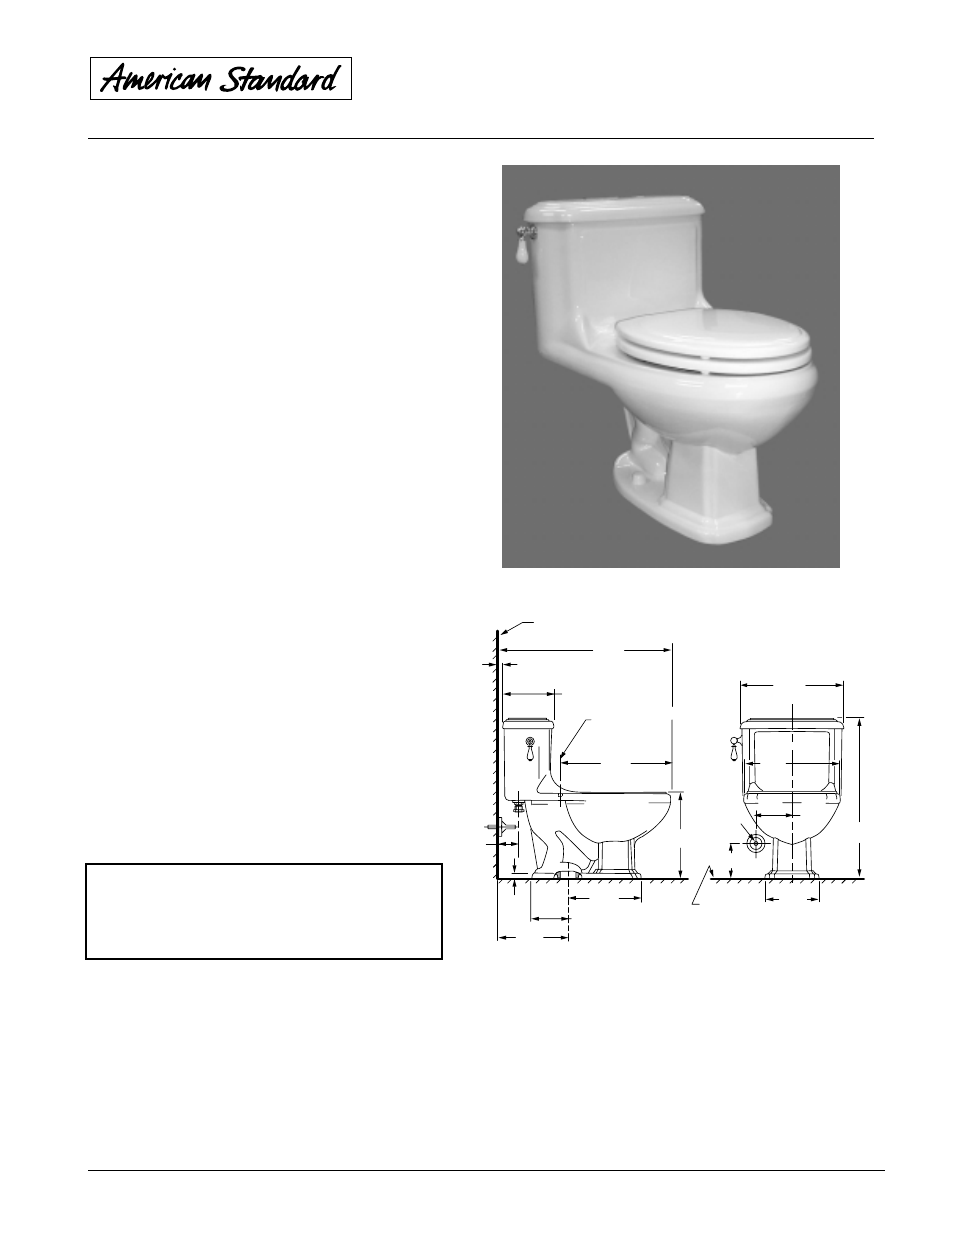 American Standard Williamsburg One-Piece Elongated Toilet